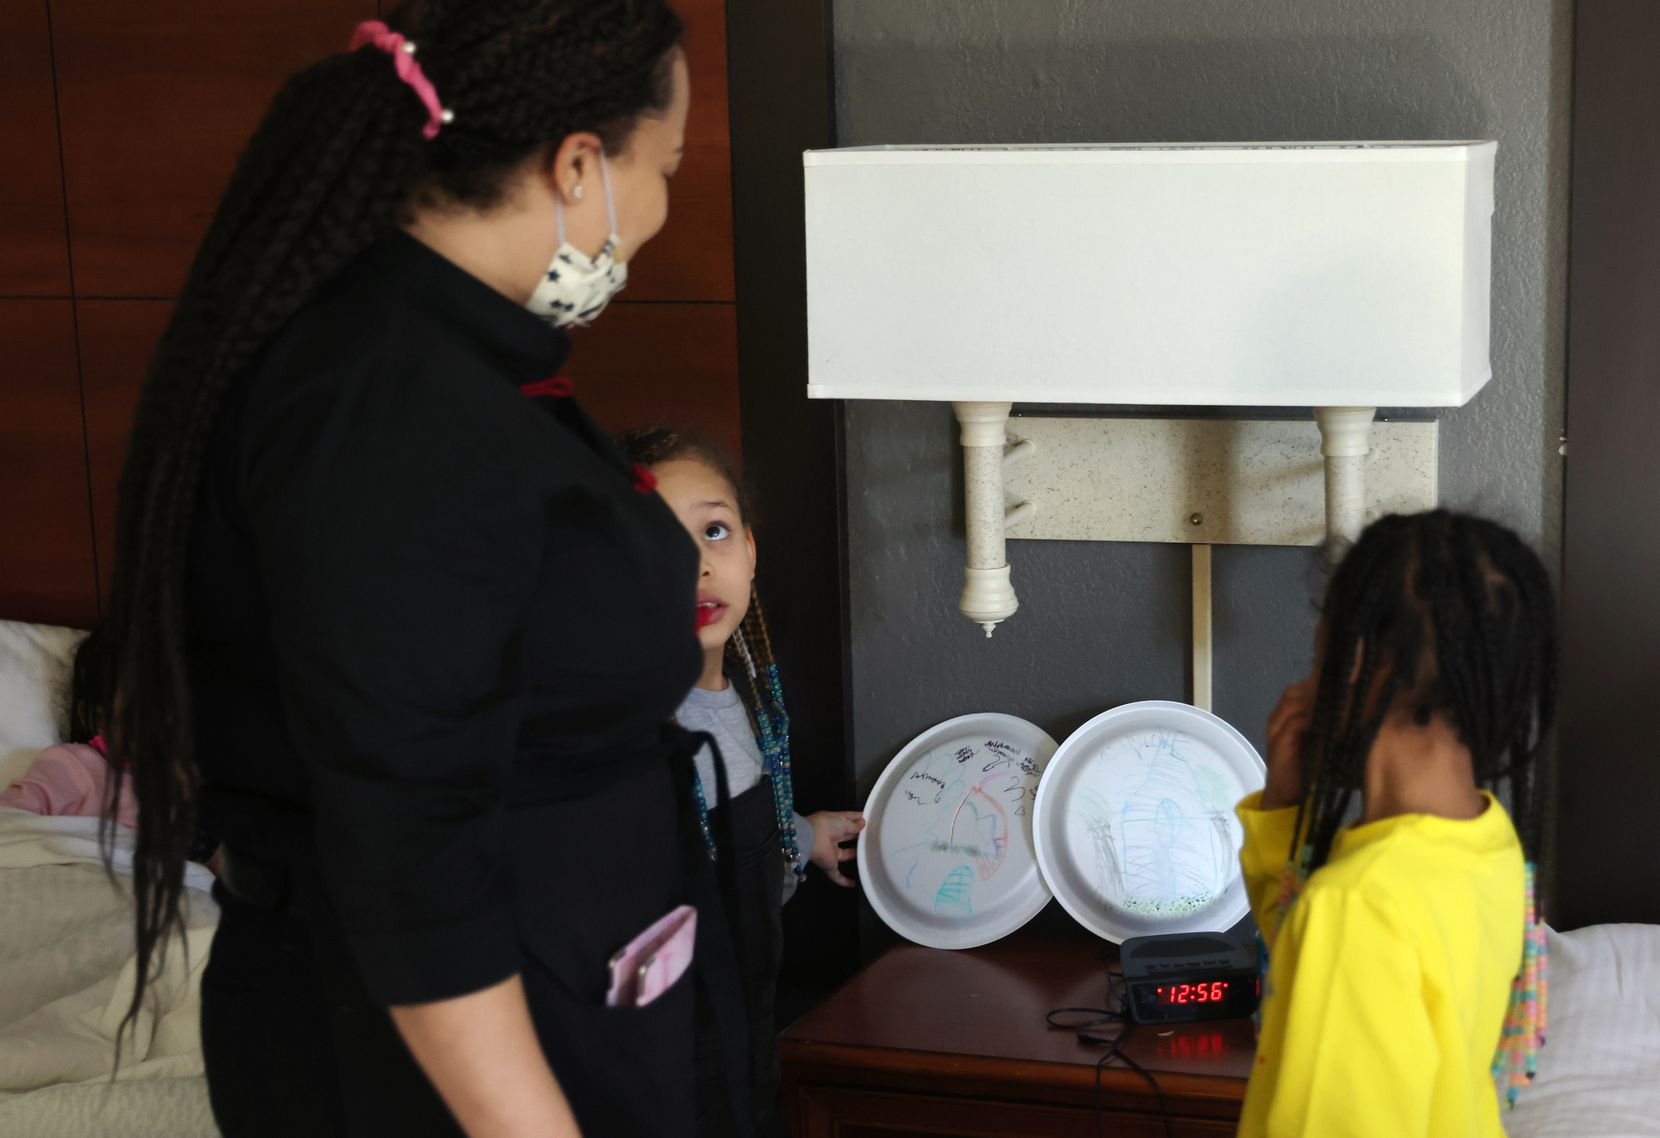 Yannoj Young, 8 (second from left) and Courtney Young, 7, (right) place their artwork on the nightstand as their mother Jonnay Mckinley watches inside their hotel room on Monday, February 1, 2021.